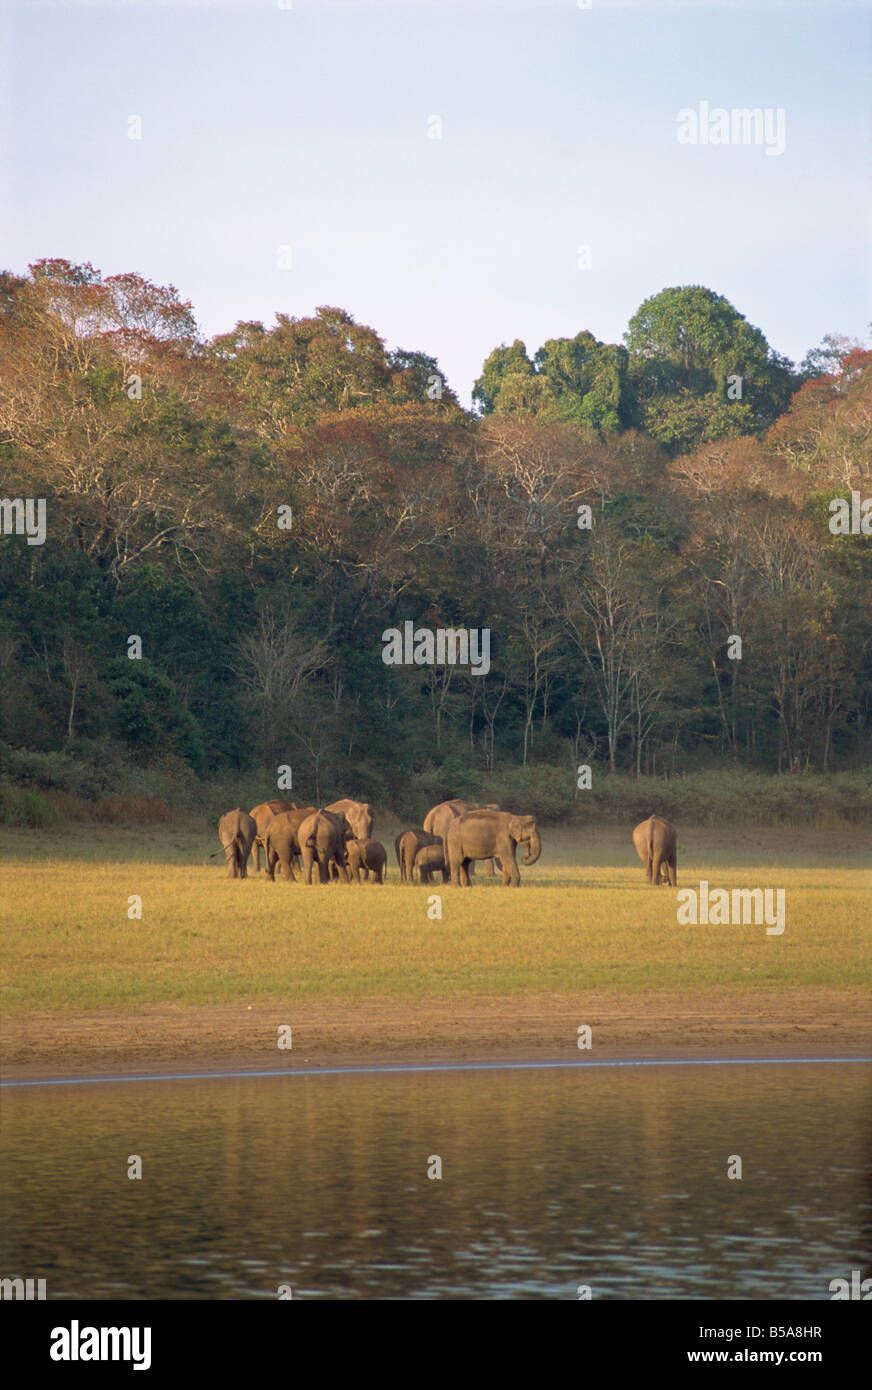 Elephants at the Periyar Wildlife Sanctuary, near Thekkady, Western Ghats, Kerala state, India - Stock Image